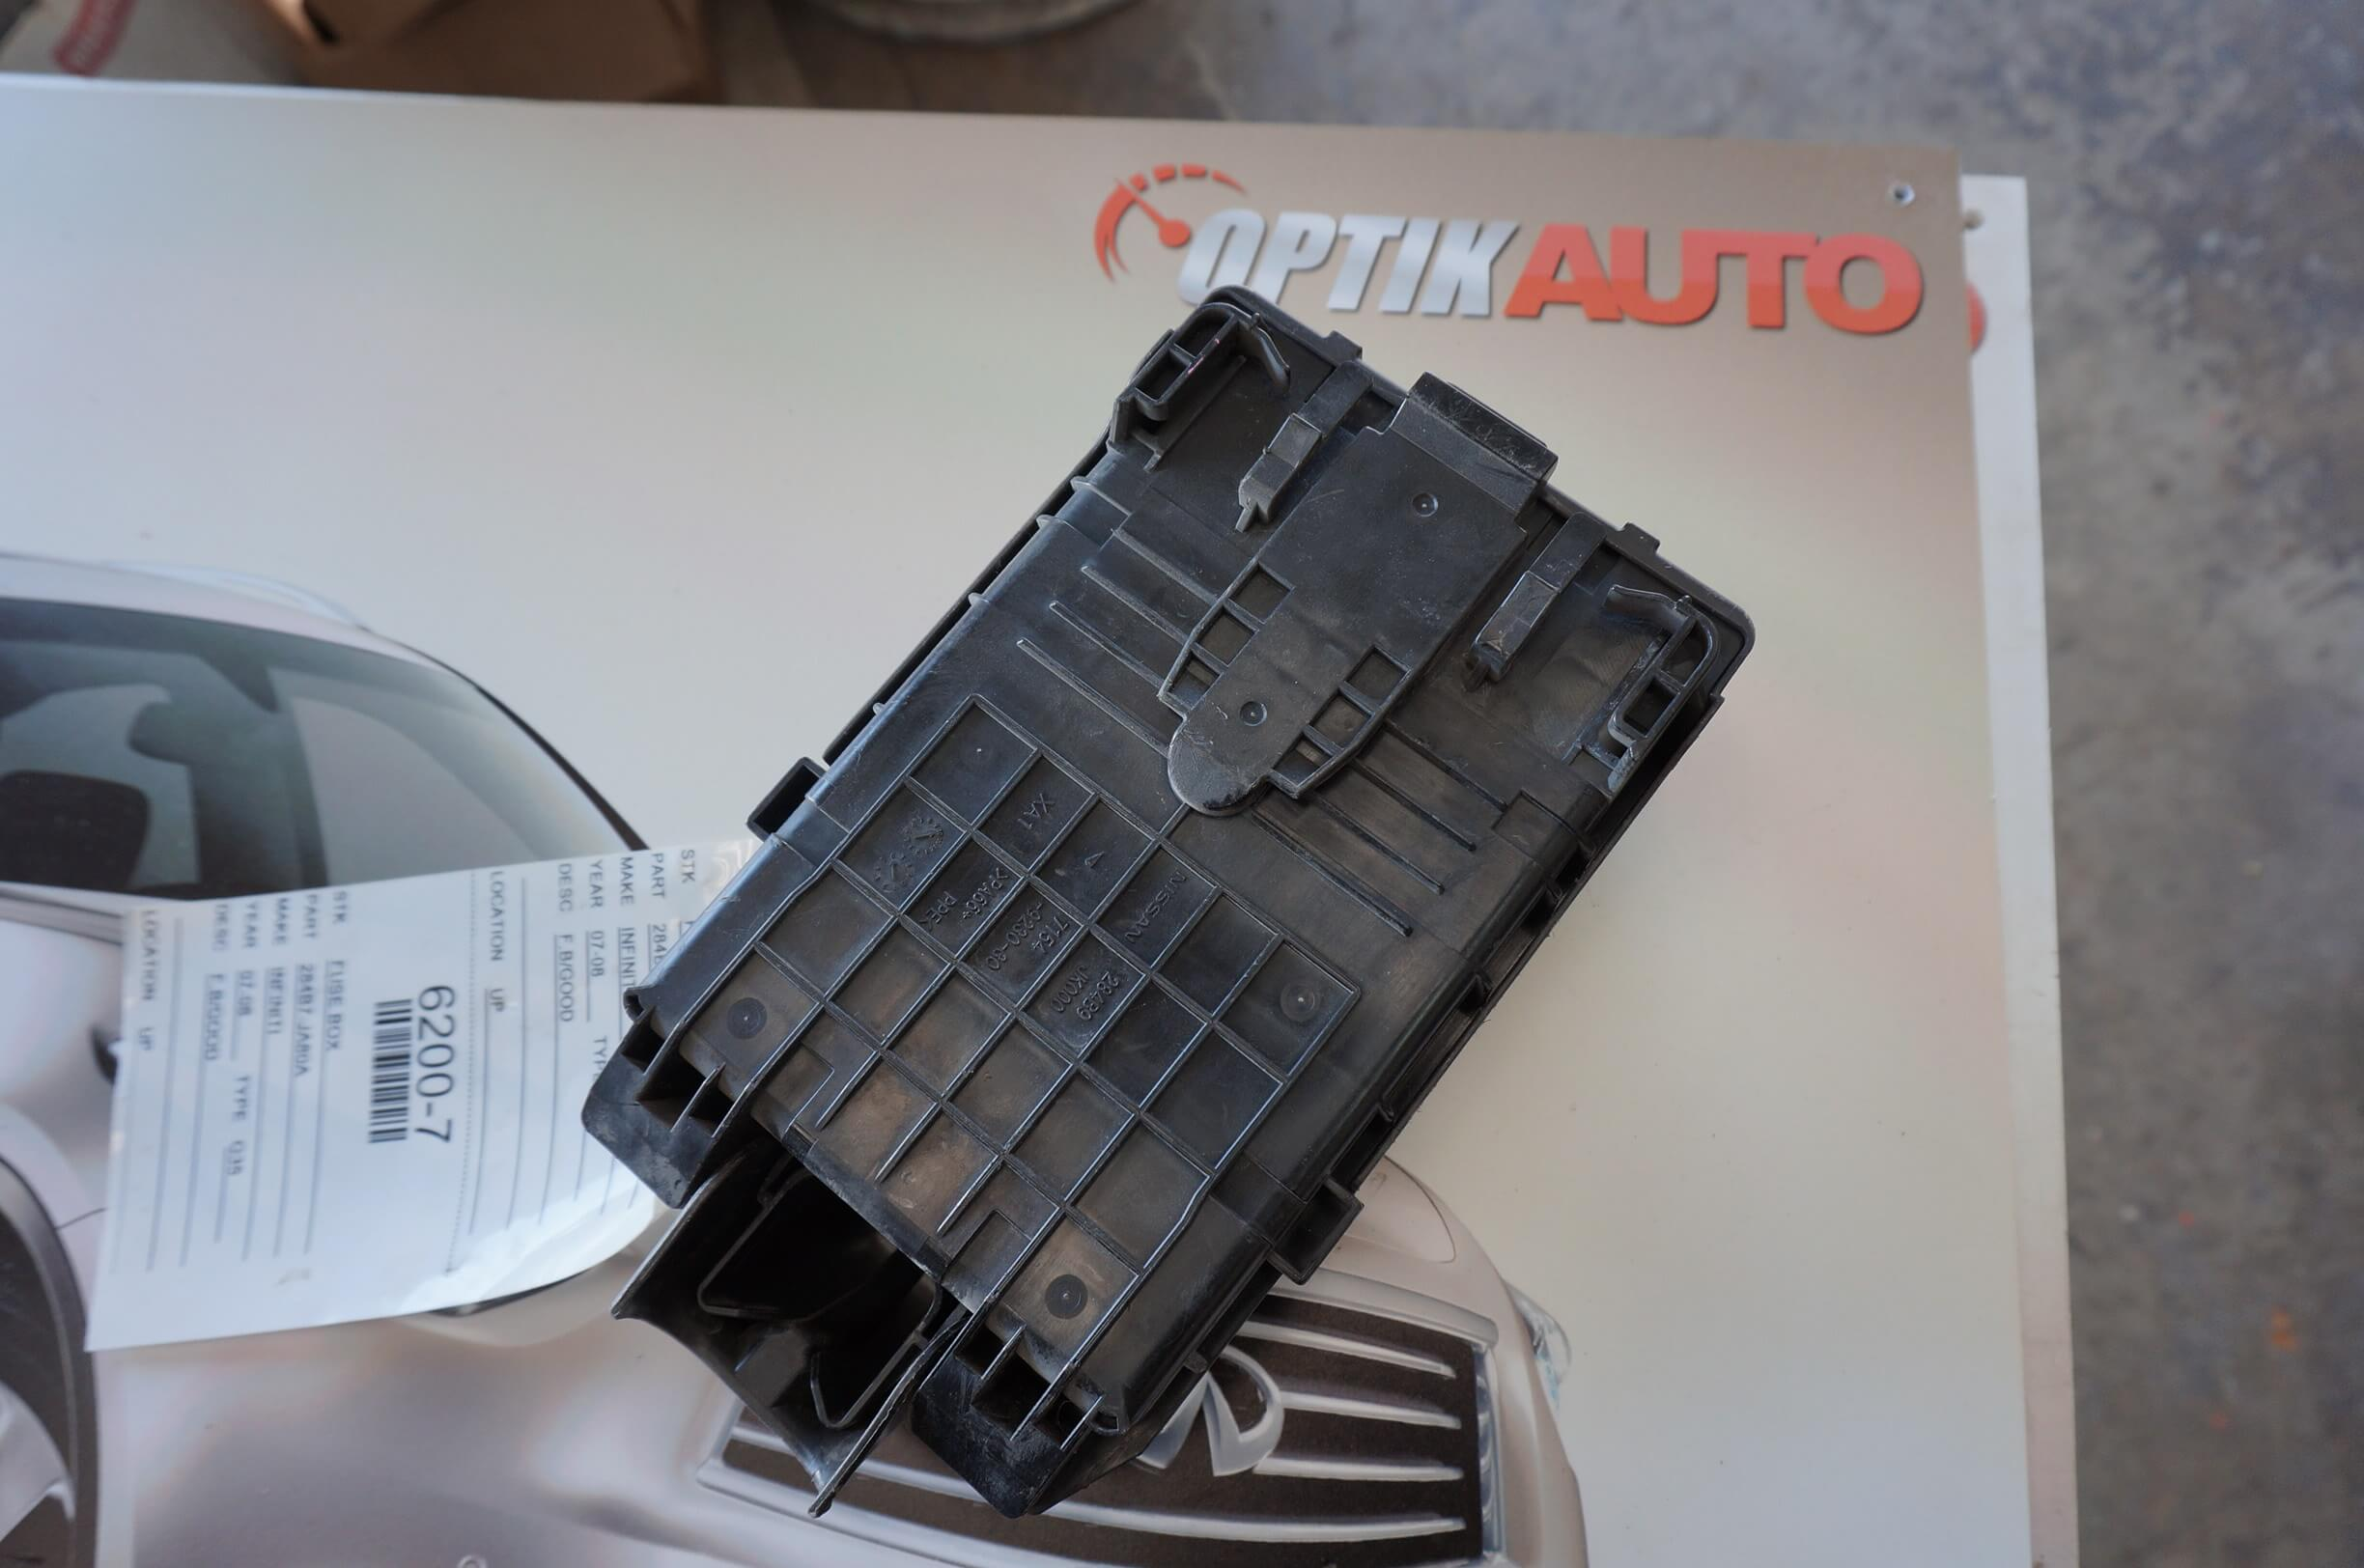 Infiniti G35 2007 2008 Ipdm Fuse Box 284b7ja80a Optikauto G35 Parking Light Fuse  2008 G35 Fuse Box